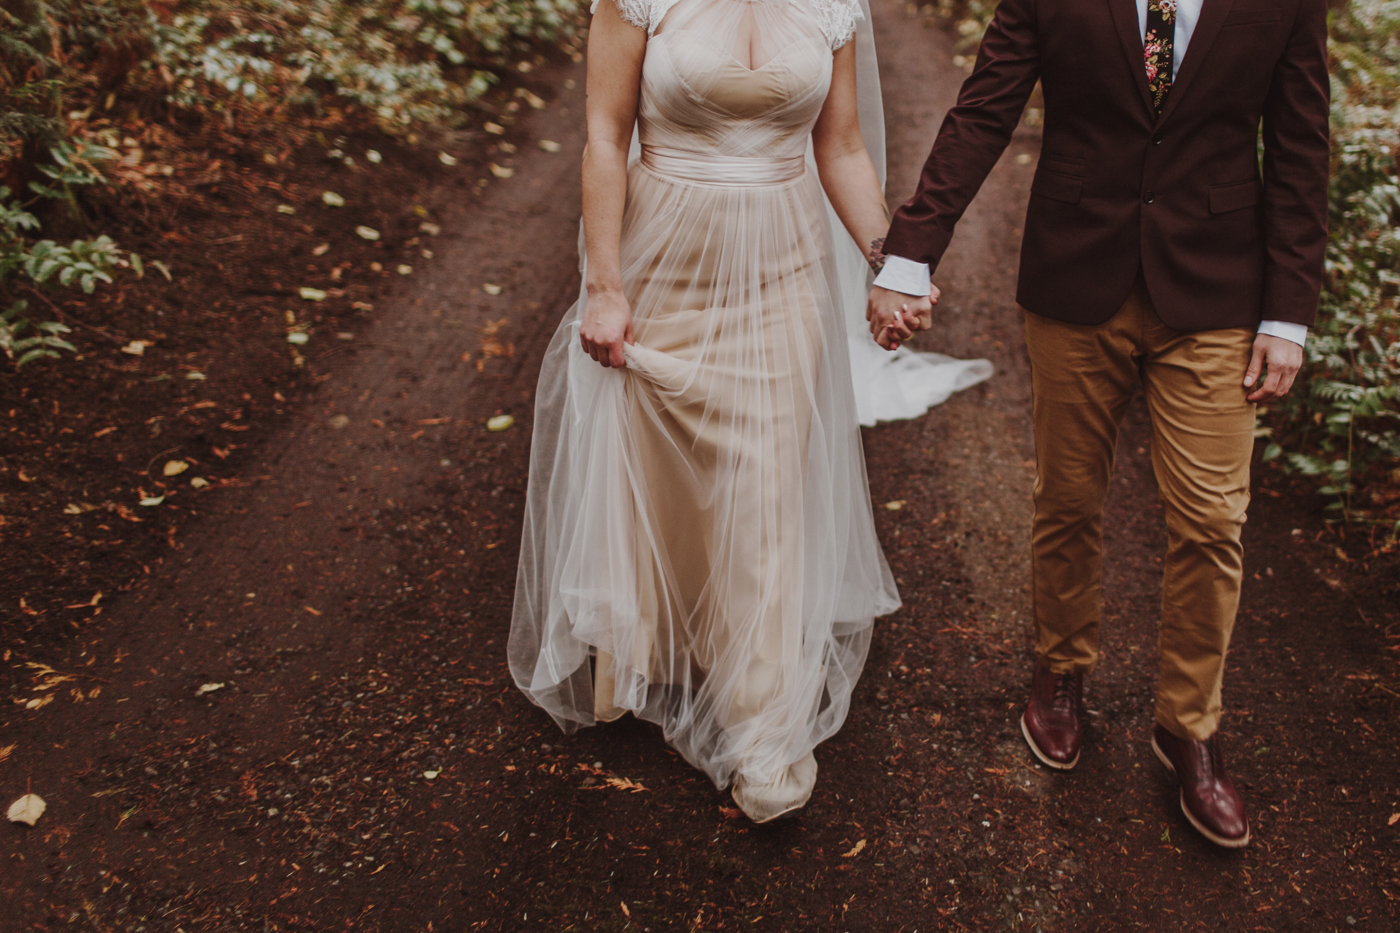 Olympic Peninsula Elopement-LizMorrow-42.jpg